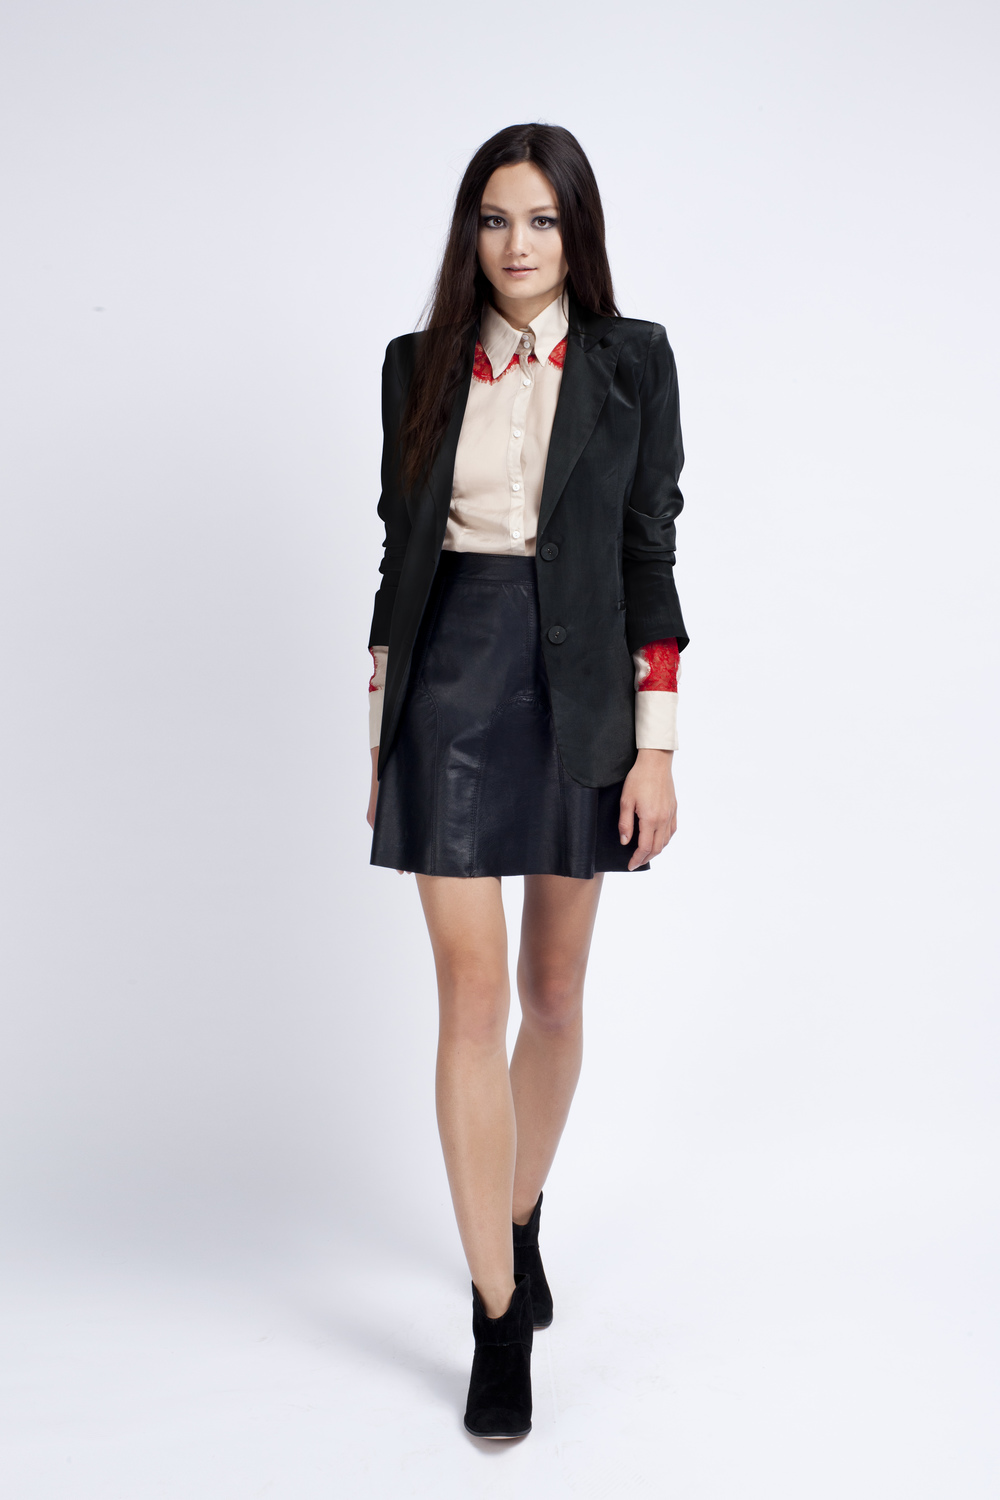 Little Joe Woman __ Mr Dynamite Leather Skirt __ $599 __ www.littlejoeny.com.jpg